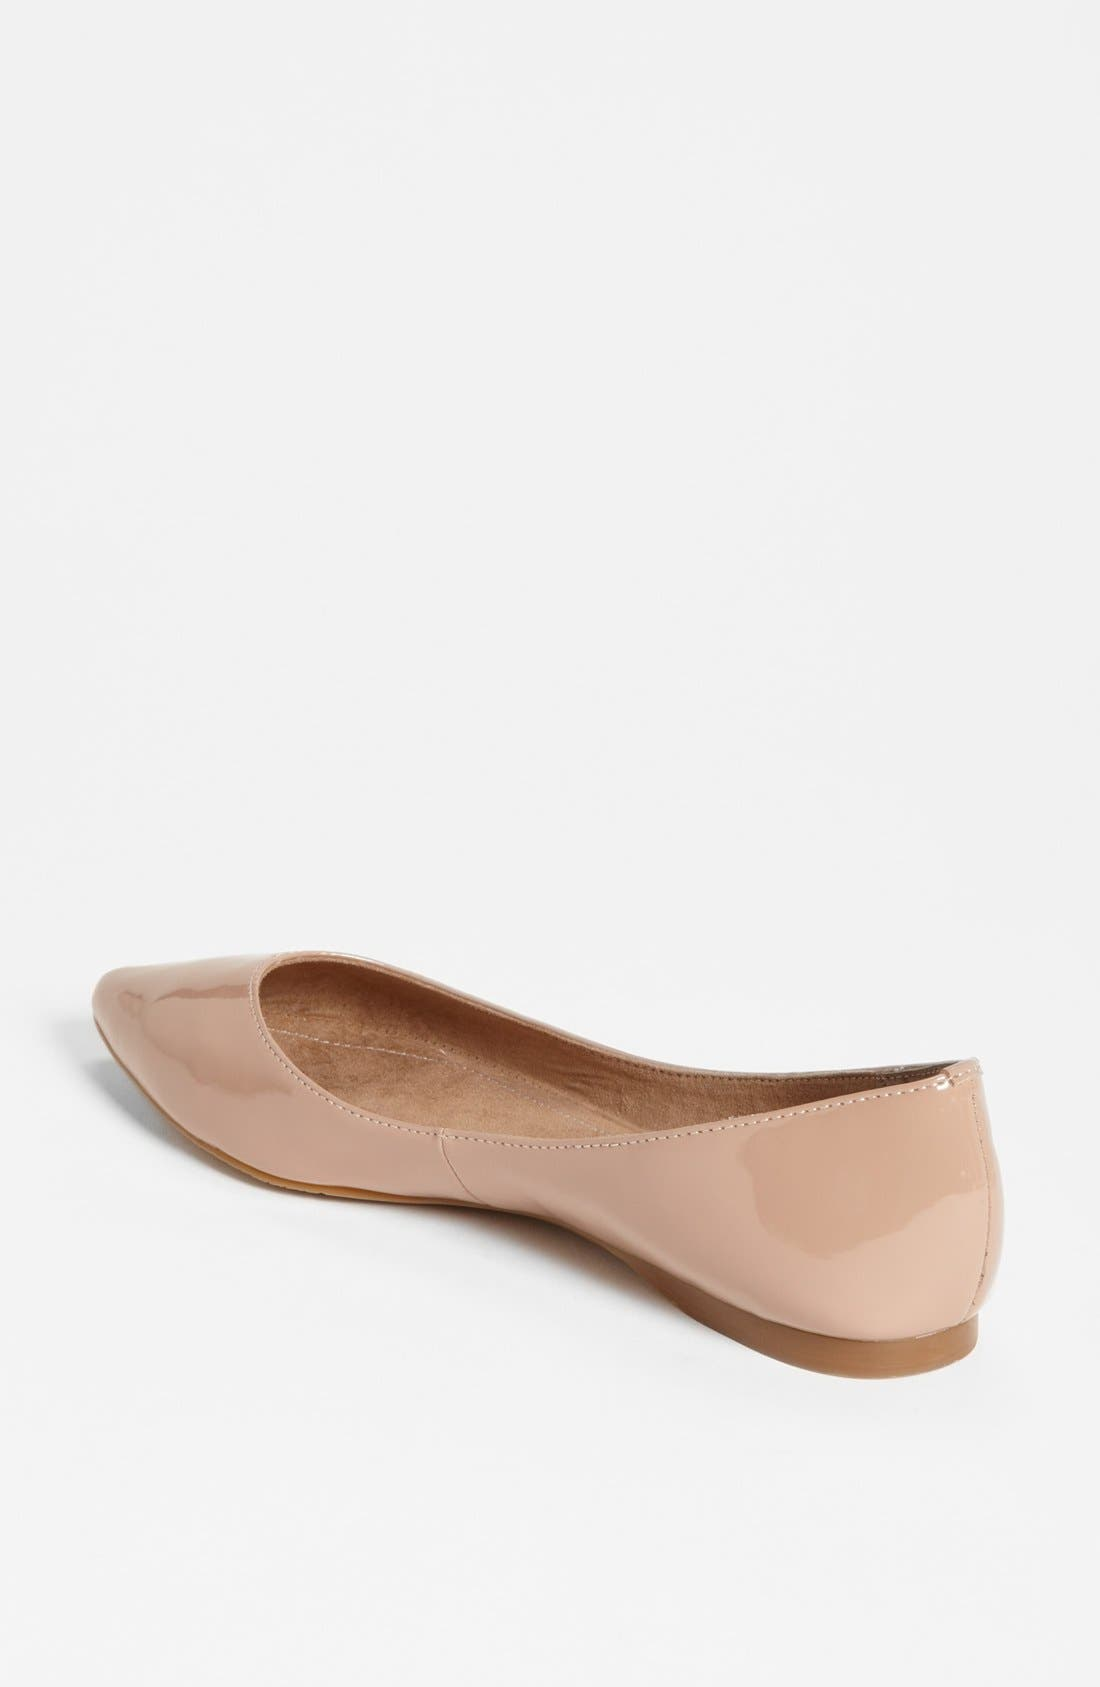 'Moveover' Pointy Toe Flat,                             Alternate thumbnail 22, color,